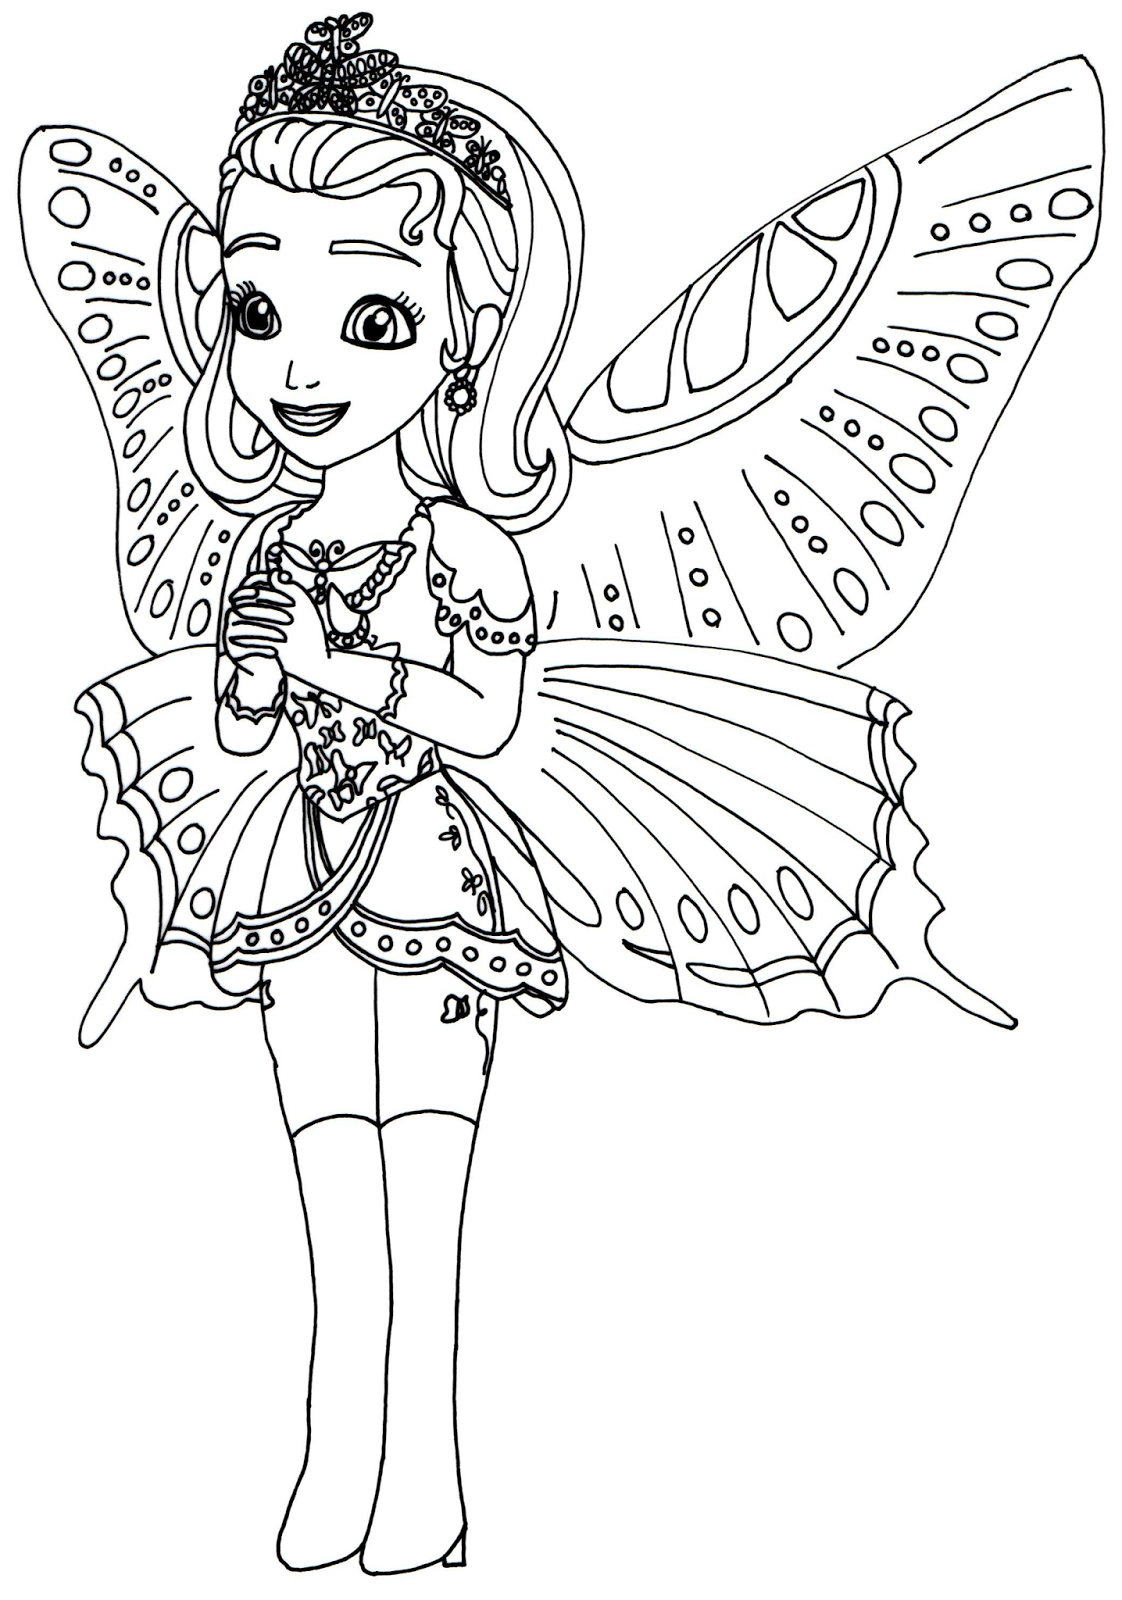 This is an image of Candid Sofia the First Printable Coloring Pages